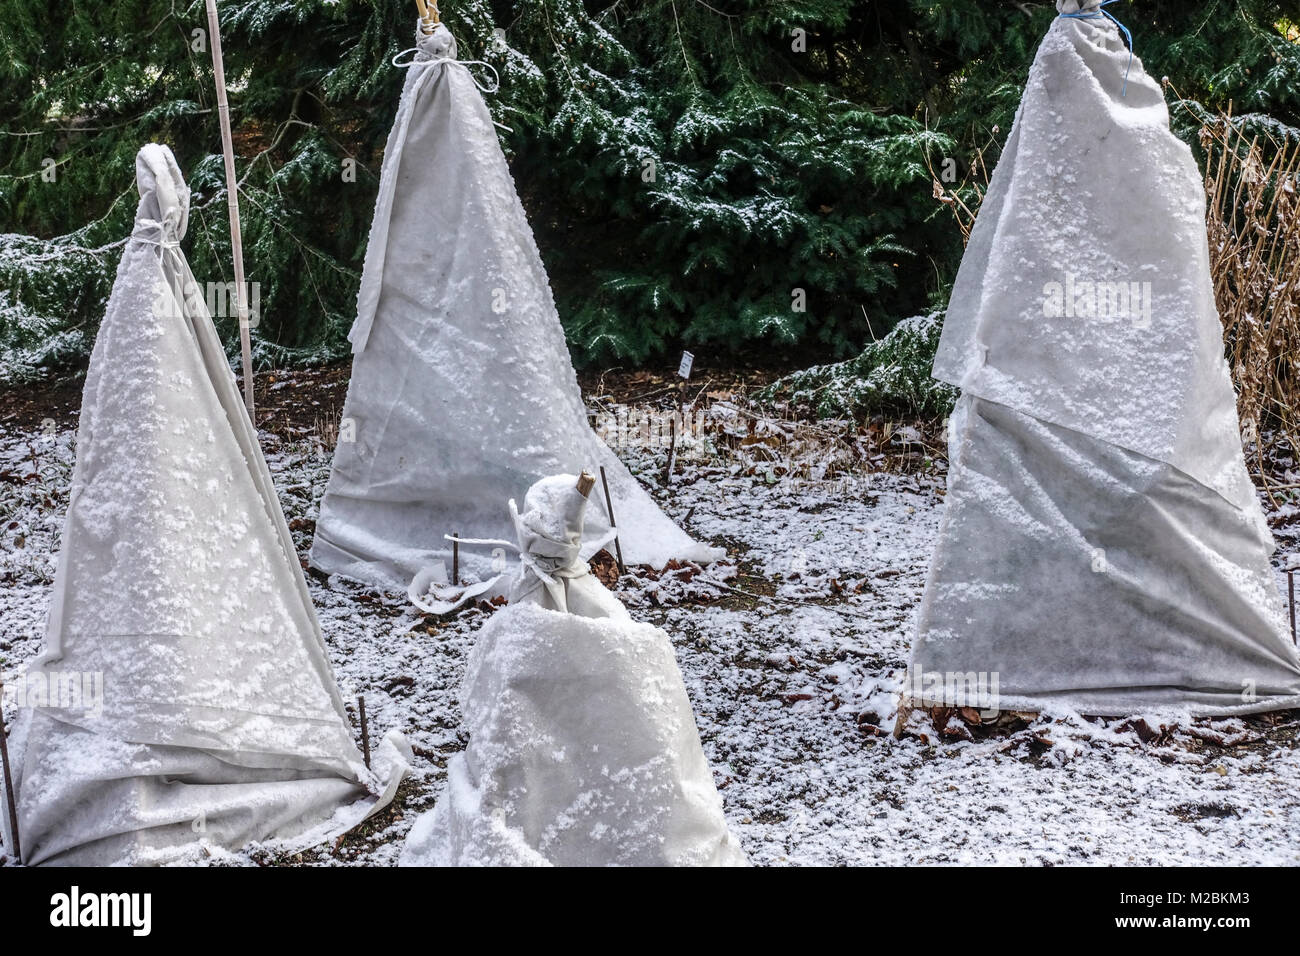 frost protection plants stockfotos frost protection plants bilder alamy. Black Bedroom Furniture Sets. Home Design Ideas